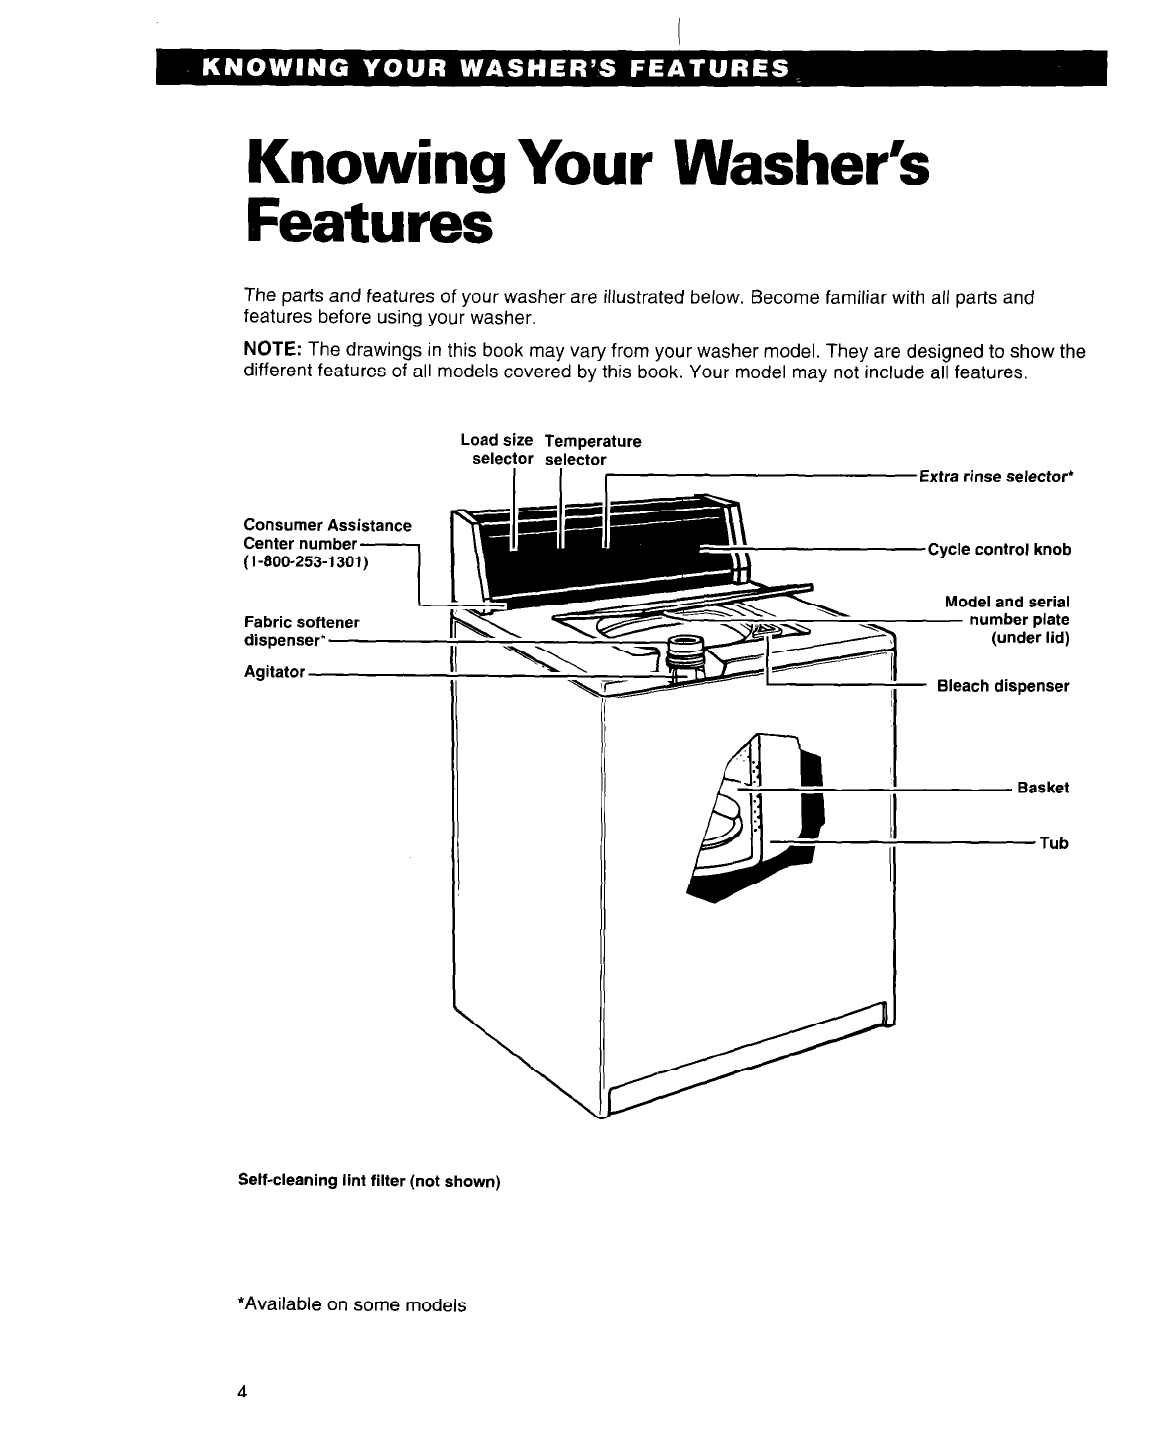 Page 4 of Whirlpool Washer/Dryer W10196553A User Guide